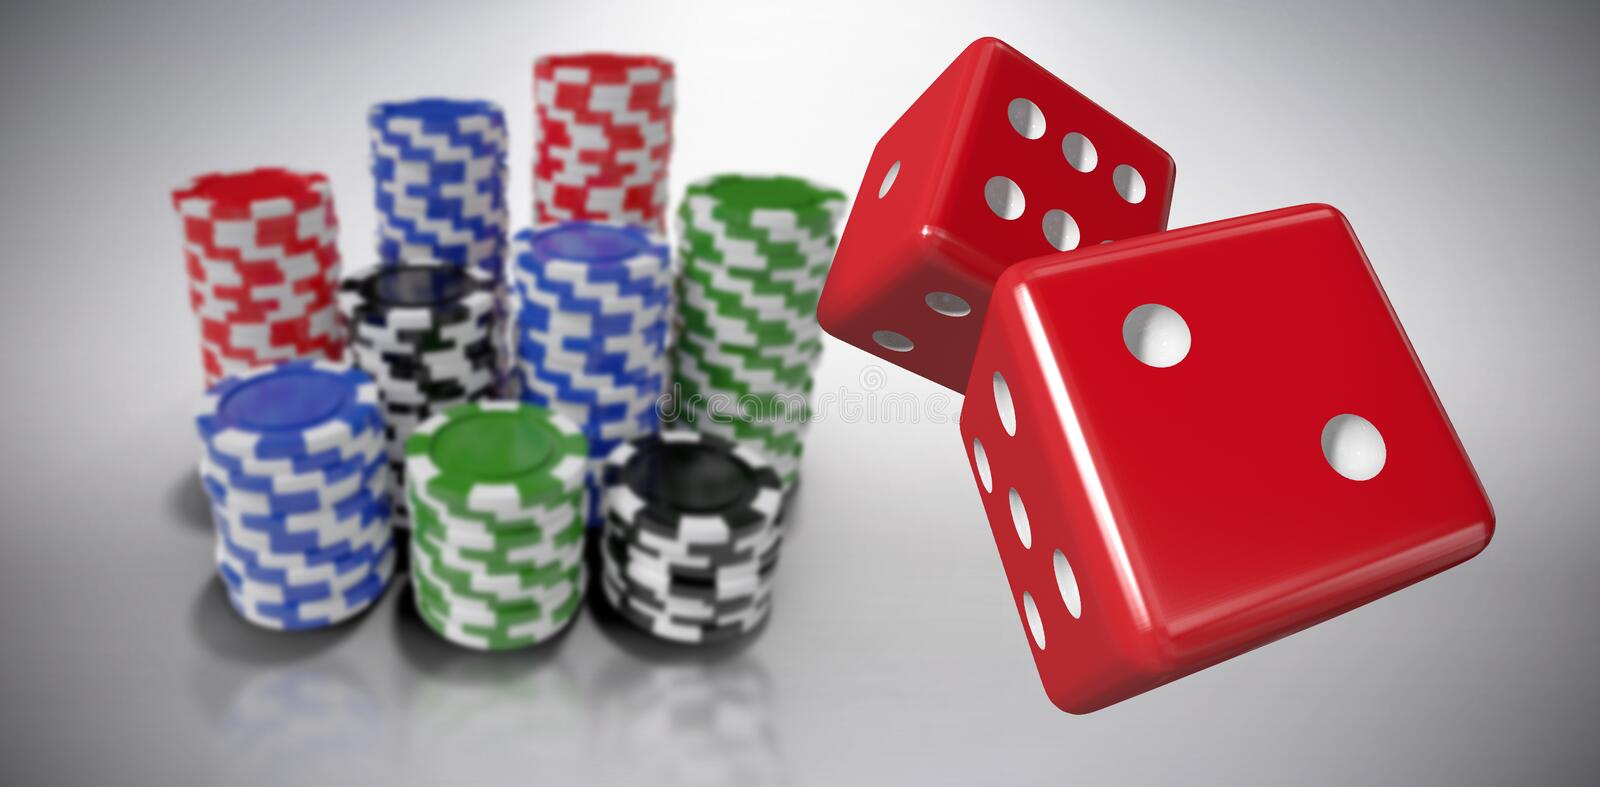 Composite image of digitally generated 3d image of red dice. Digitally generated 3D image of red dice against grey background royalty free illustration